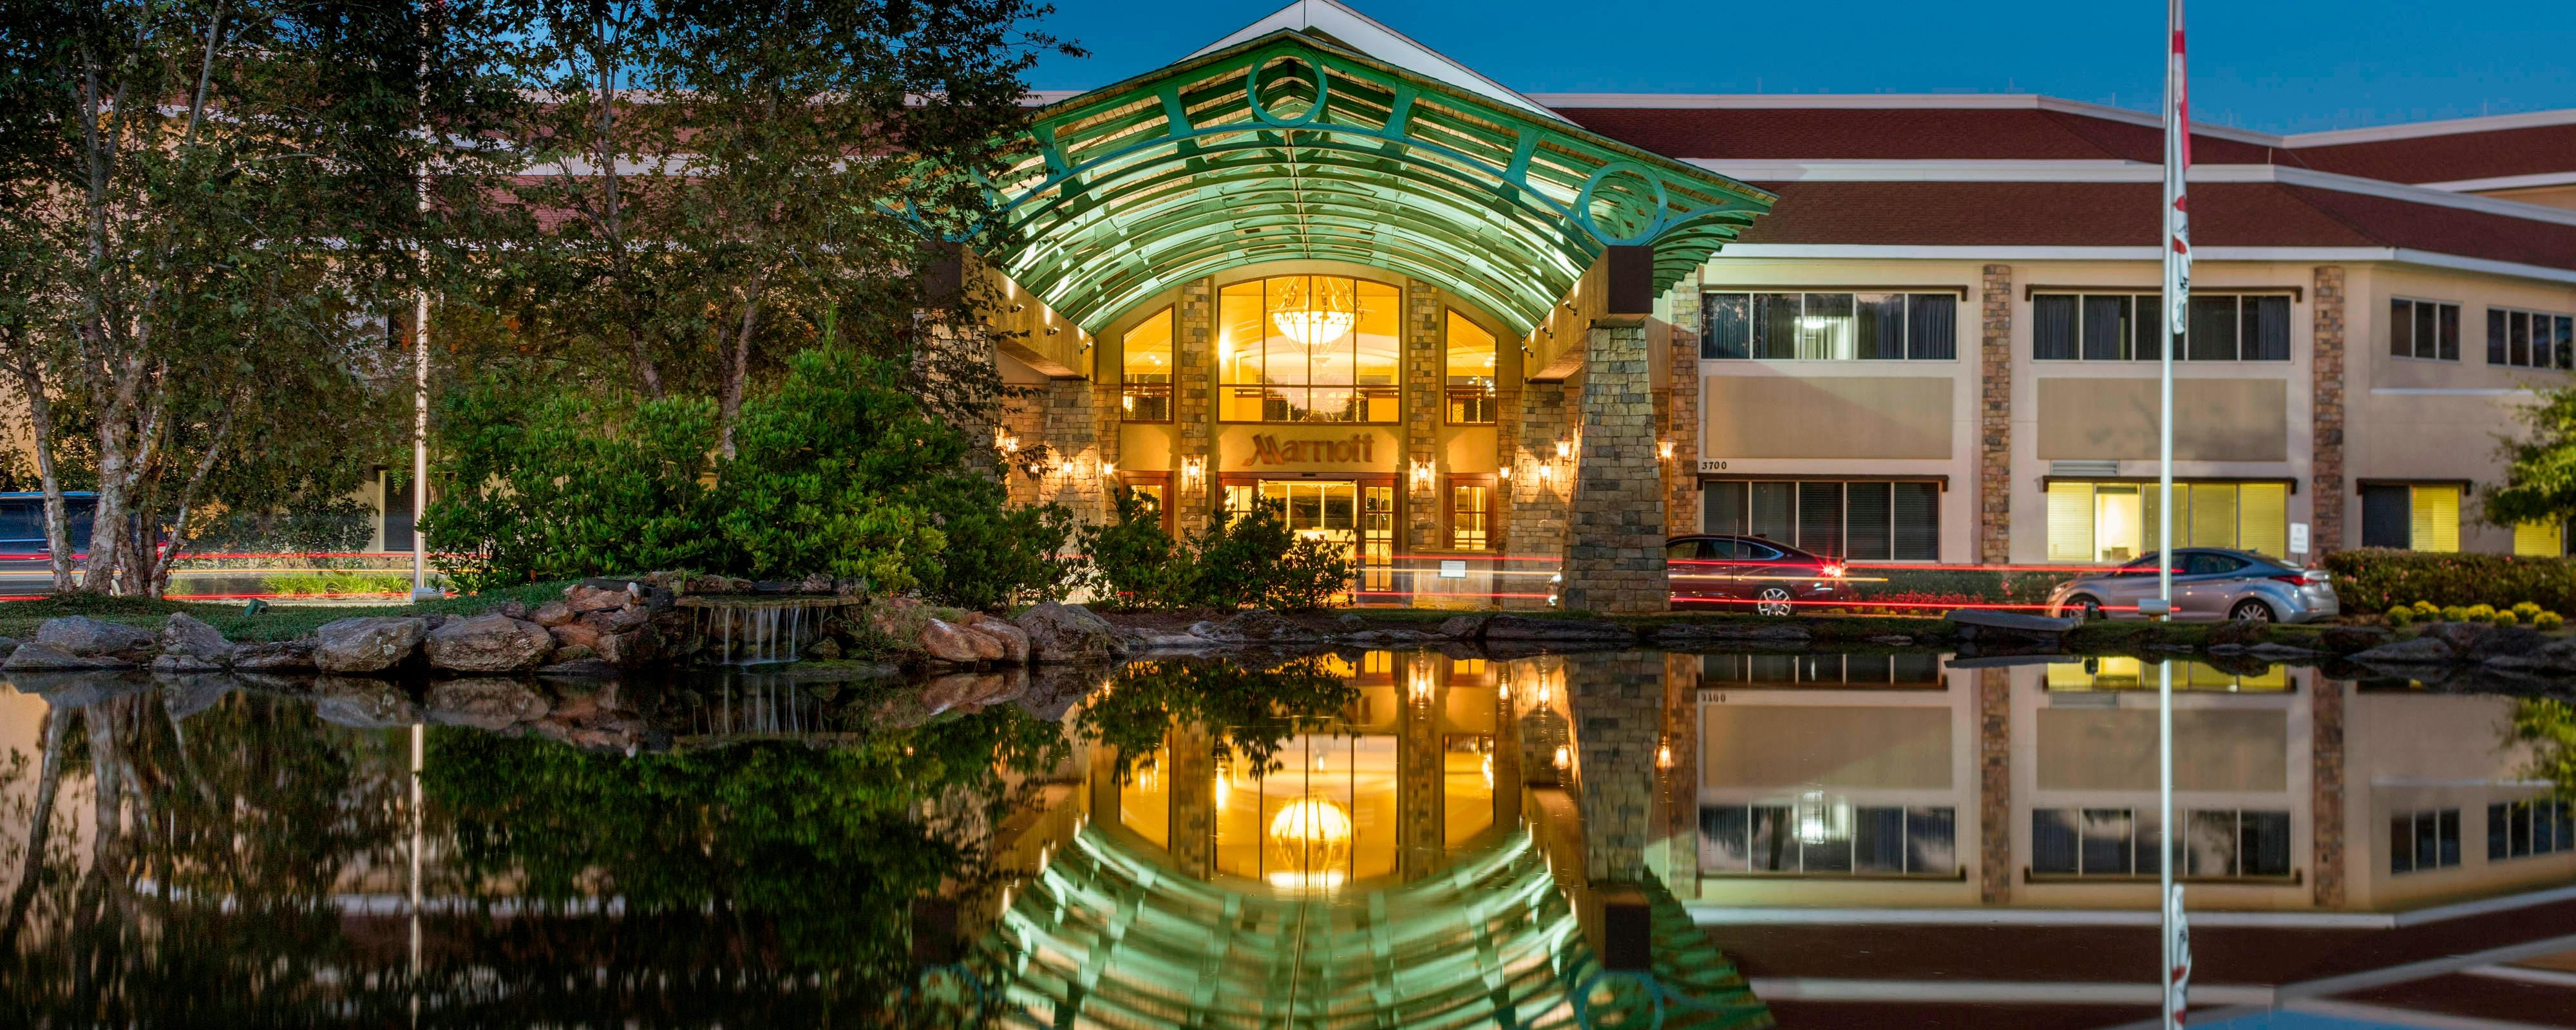 hotels in opelika al auburn marriott opelika resort spa rh marriott com